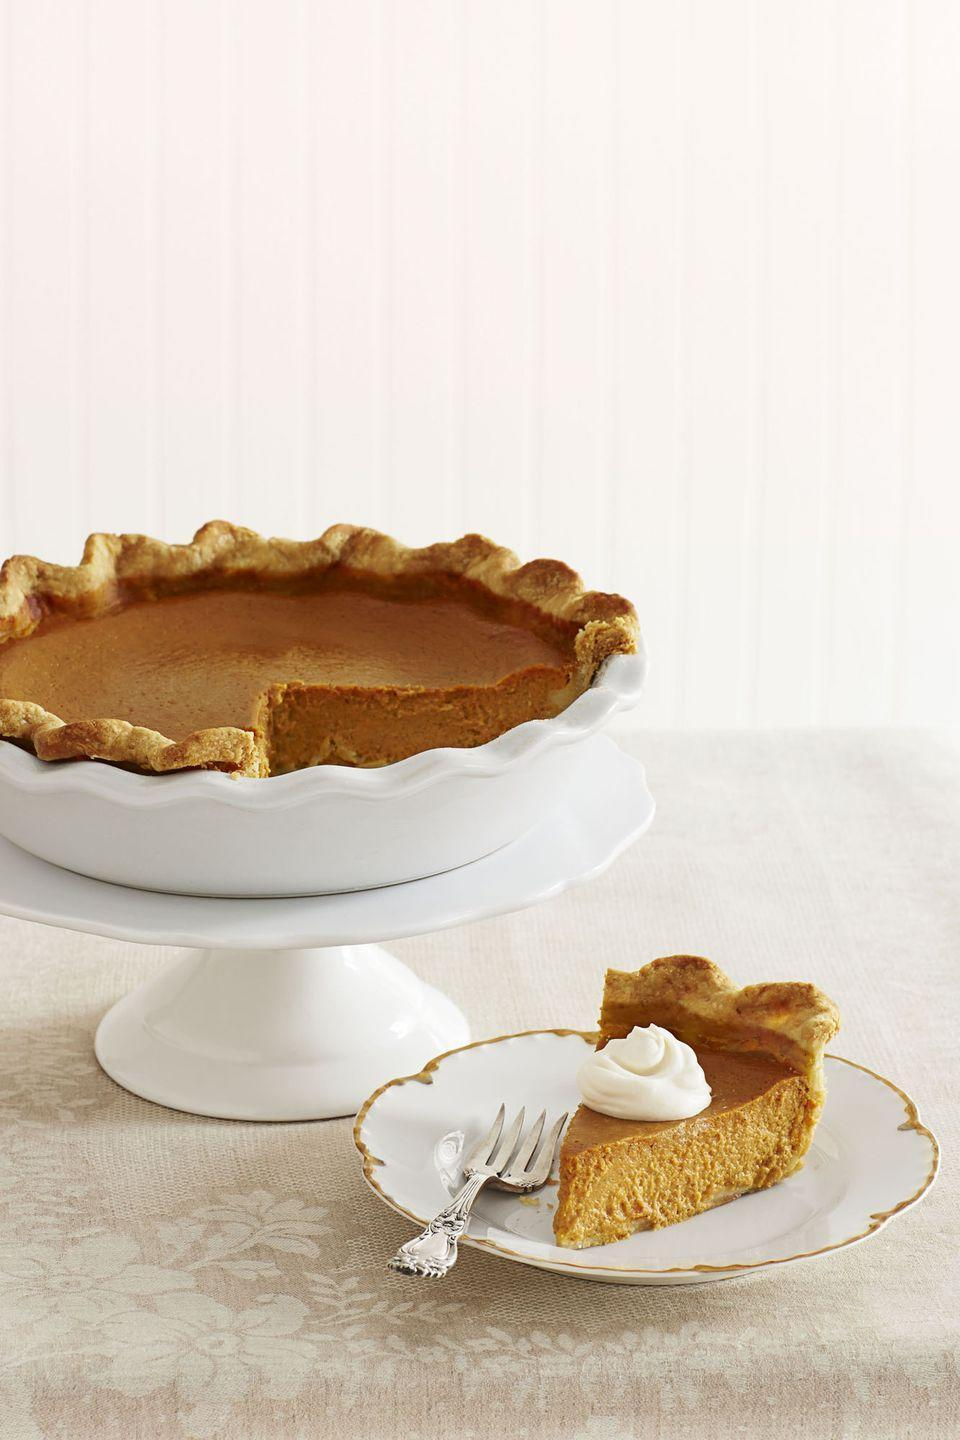 "<p>This pumpkin pie and its whipped cream topping are made with a splash of dark rum, making this American classic even more irresistible. Bonus tip: Start this recipe off by making Garten's famous <a href=""https://www.goodhousekeeping.com/food-recipes/a15497/perfect-piecrust-recipe-ghk1113/"" rel=""nofollow noopener"" target=""_blank"" data-ylk=""slk:Perfect Piecrust"" class=""link rapid-noclick-resp"">Perfect Piecrust</a>.</p><p><em><a href=""https://www.goodhousekeeping.com/food-recipes/a15954/ultimate-pumpkin-pie-rum-whipped-cream-recipe-ghk1113/"" rel=""nofollow noopener"" target=""_blank"" data-ylk=""slk:Get the recipe for Ultimate Pumpkin Pie with Rum Whipped Cream »"" class=""link rapid-noclick-resp"">Get the recipe for Ultimate Pumpkin Pie with Rum Whipped Cream »</a></em></p><p><strong>RELATED: </strong><a href=""https://www.goodhousekeeping.com/food-recipes/g3986/pumpkin-pie-recipes/"" rel=""nofollow noopener"" target=""_blank"" data-ylk=""slk:20 Best Pumpkin Pie Recipes to Finish Your Holiday Meal Strong"" class=""link rapid-noclick-resp"">20 Best Pumpkin Pie Recipes to Finish Your Holiday Meal Strong</a></p>"